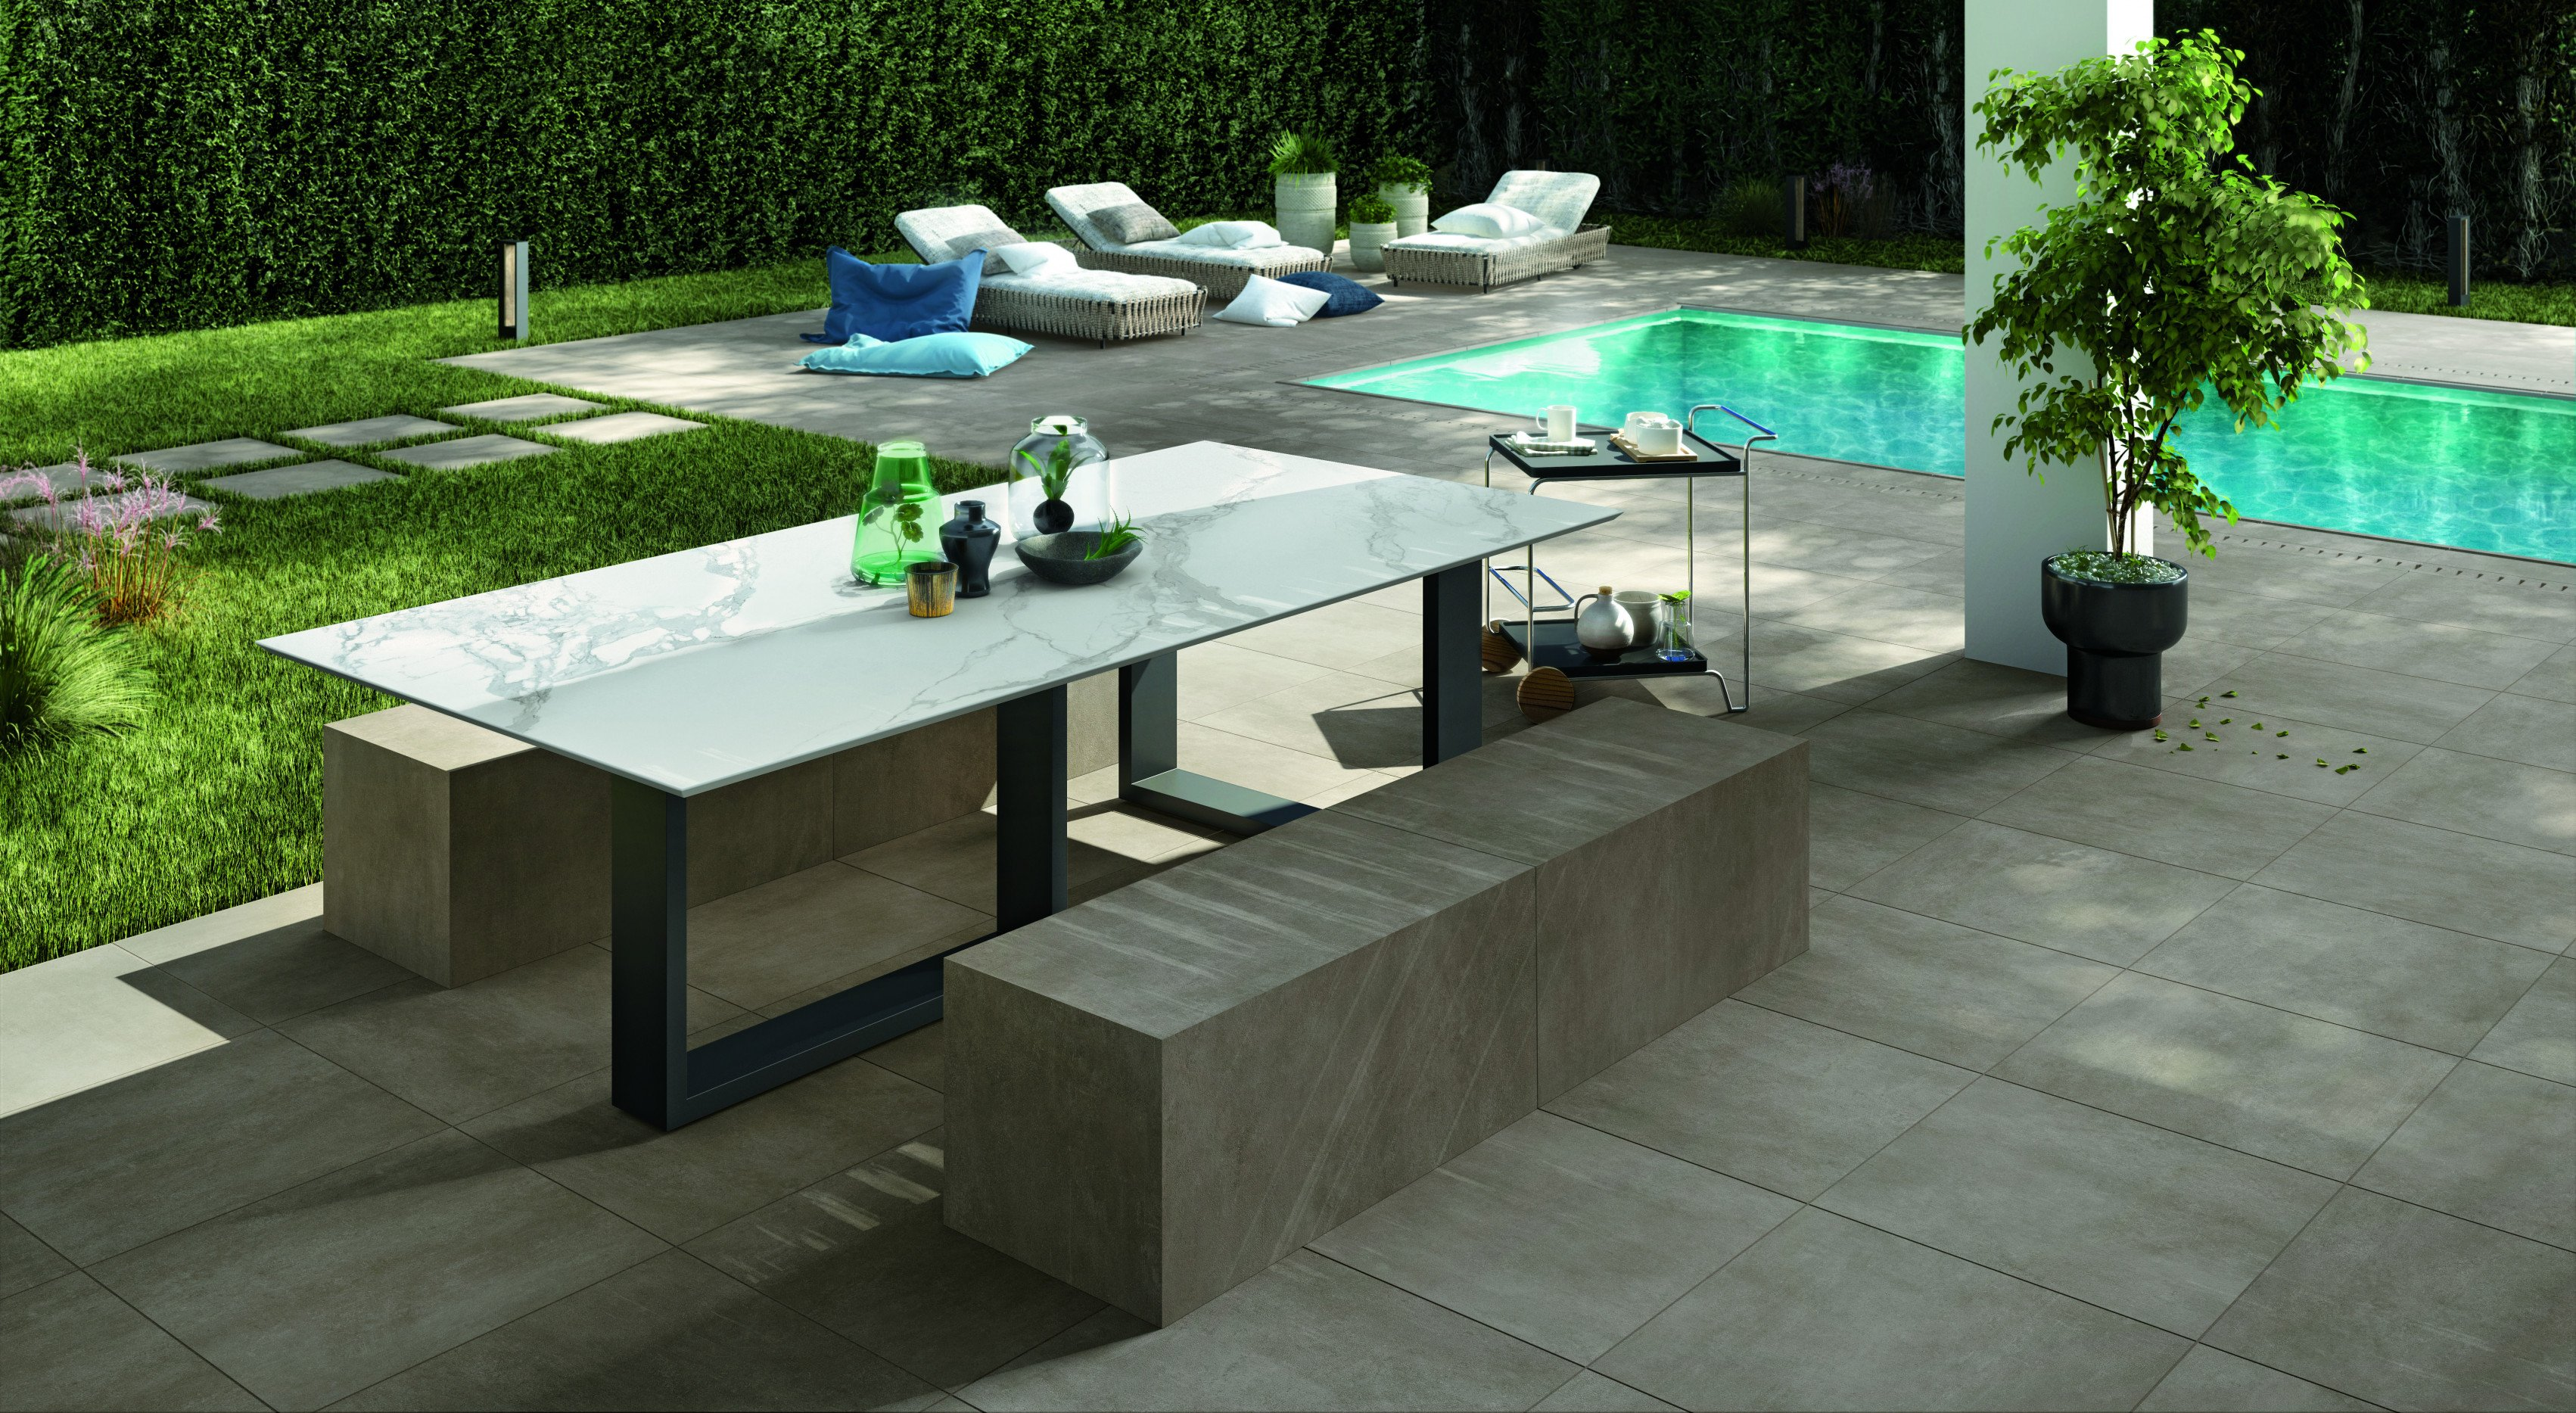 Mirage_EVO_2E_Table_Outdoor_JW12_GC04.jpg